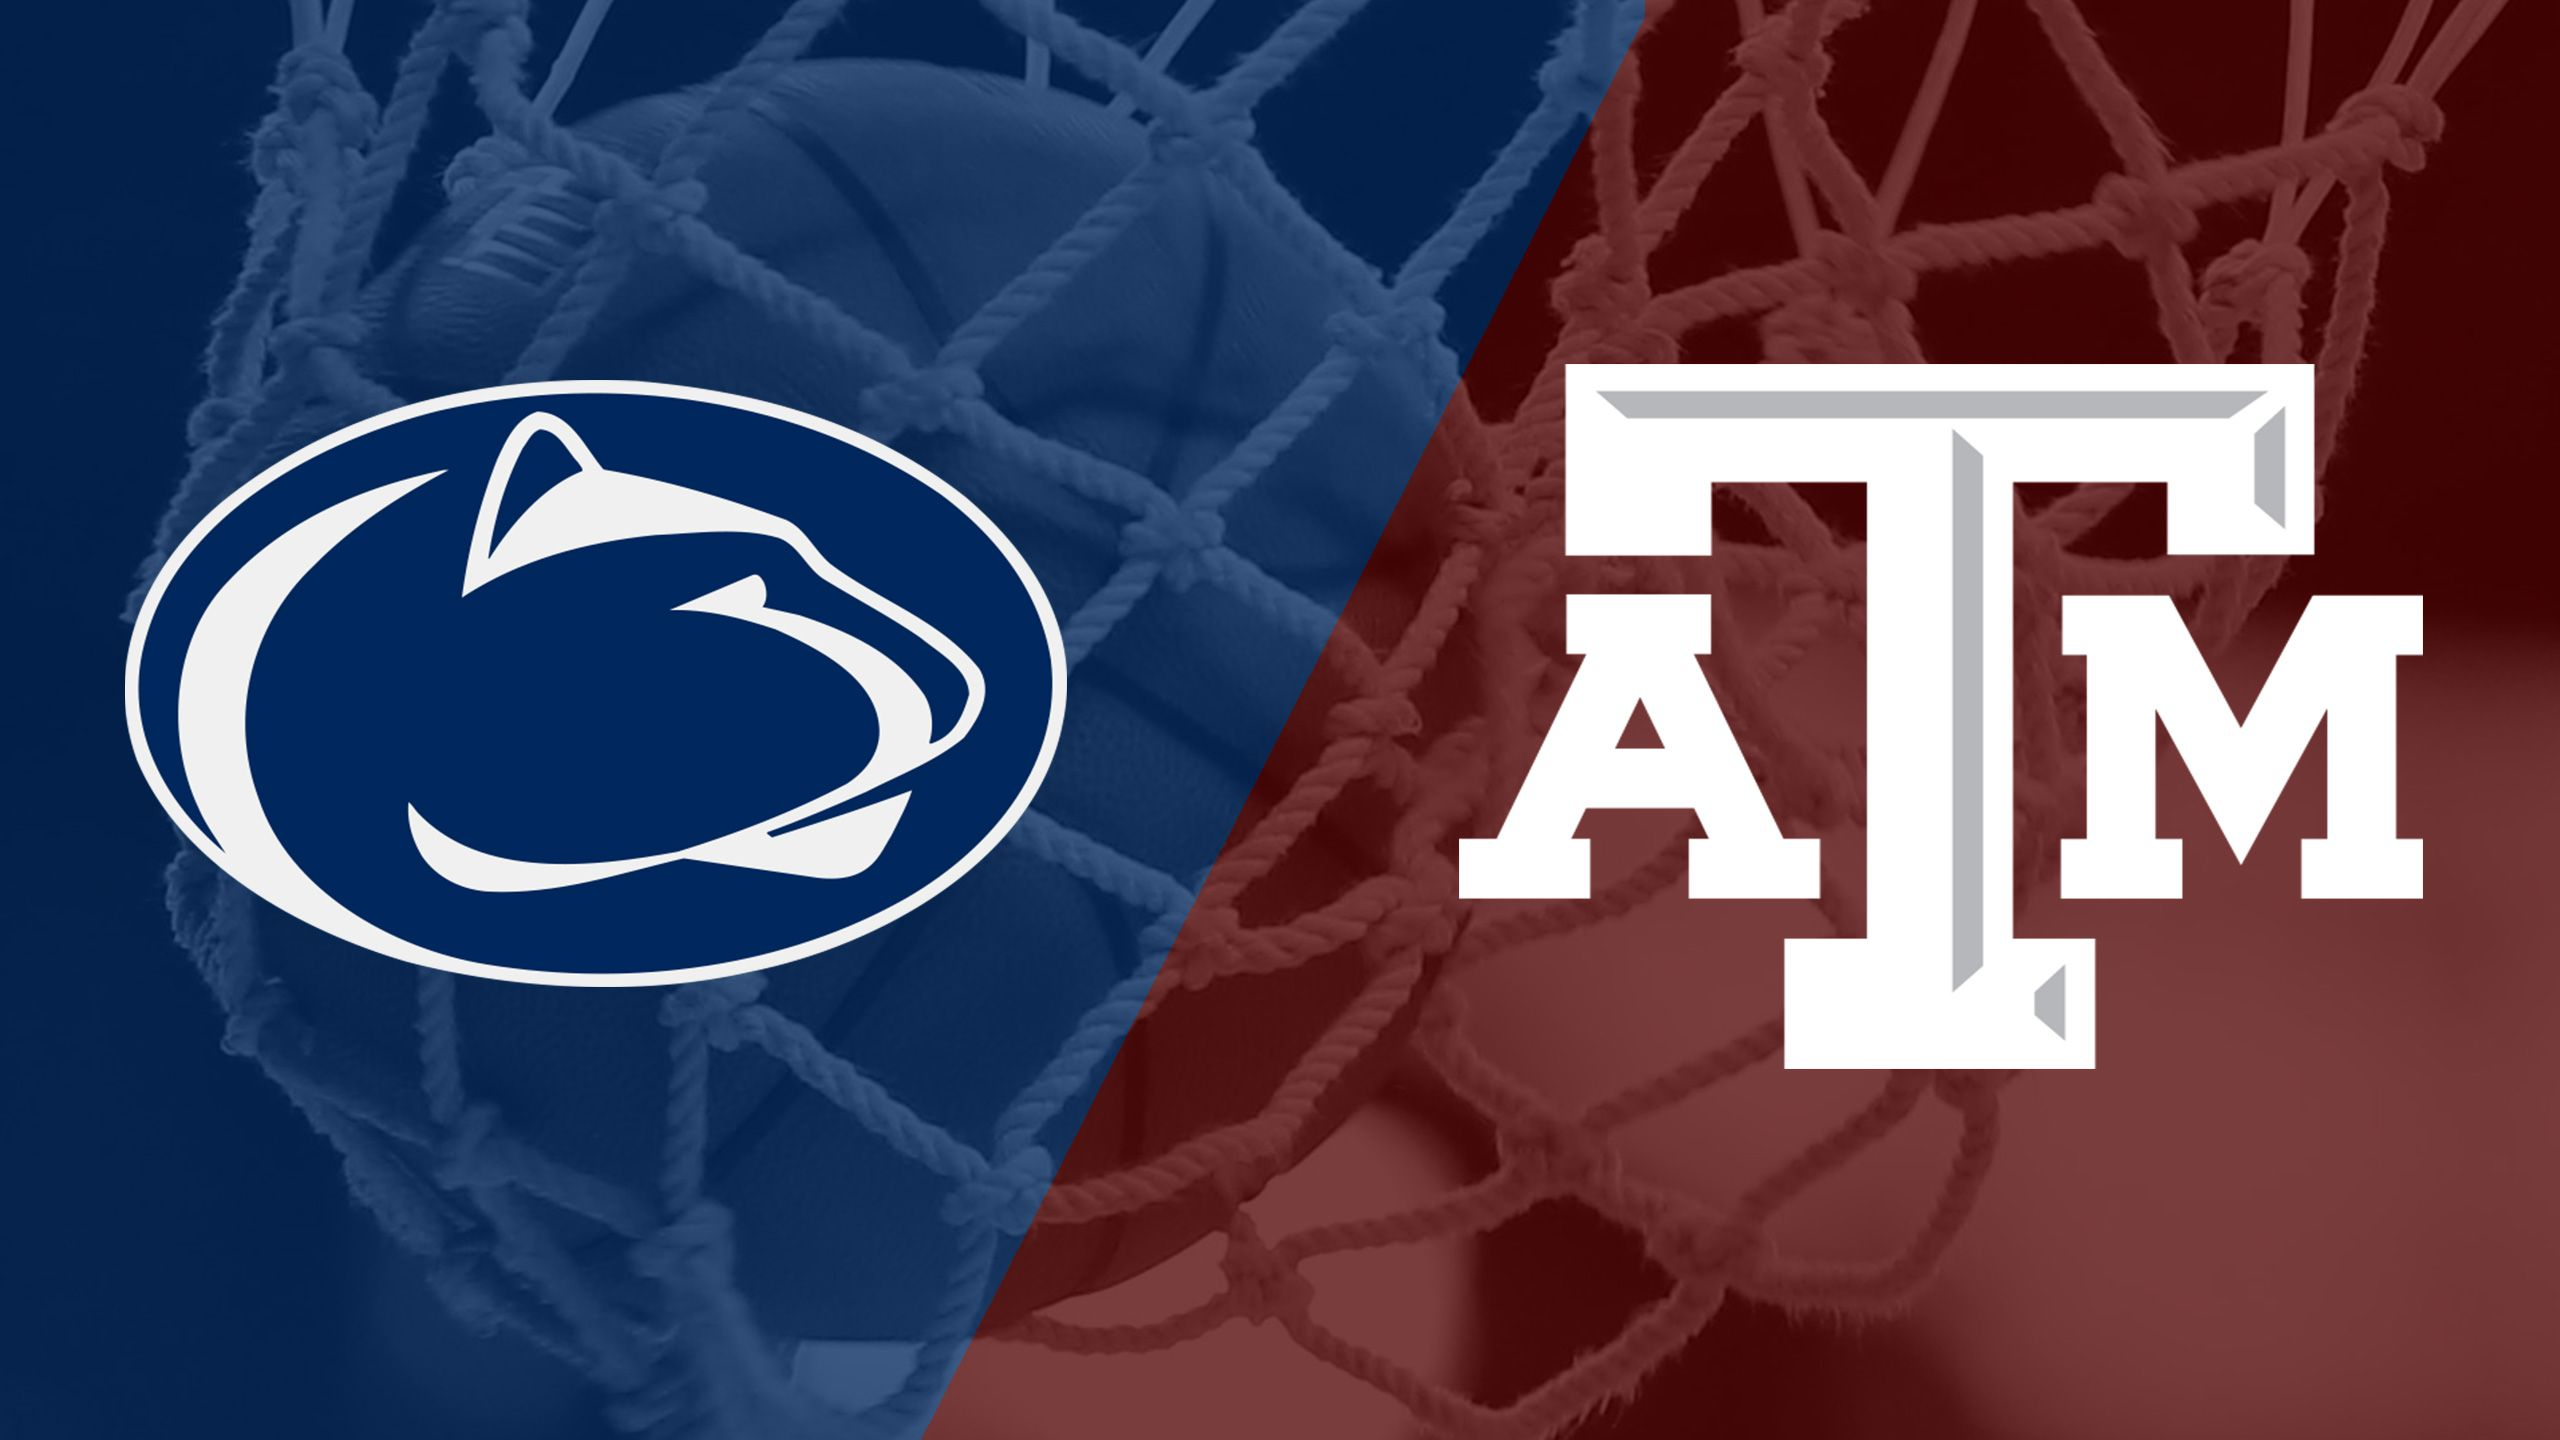 Penn State vs. #16 Texas A&M (Championship) (Legends Classic)